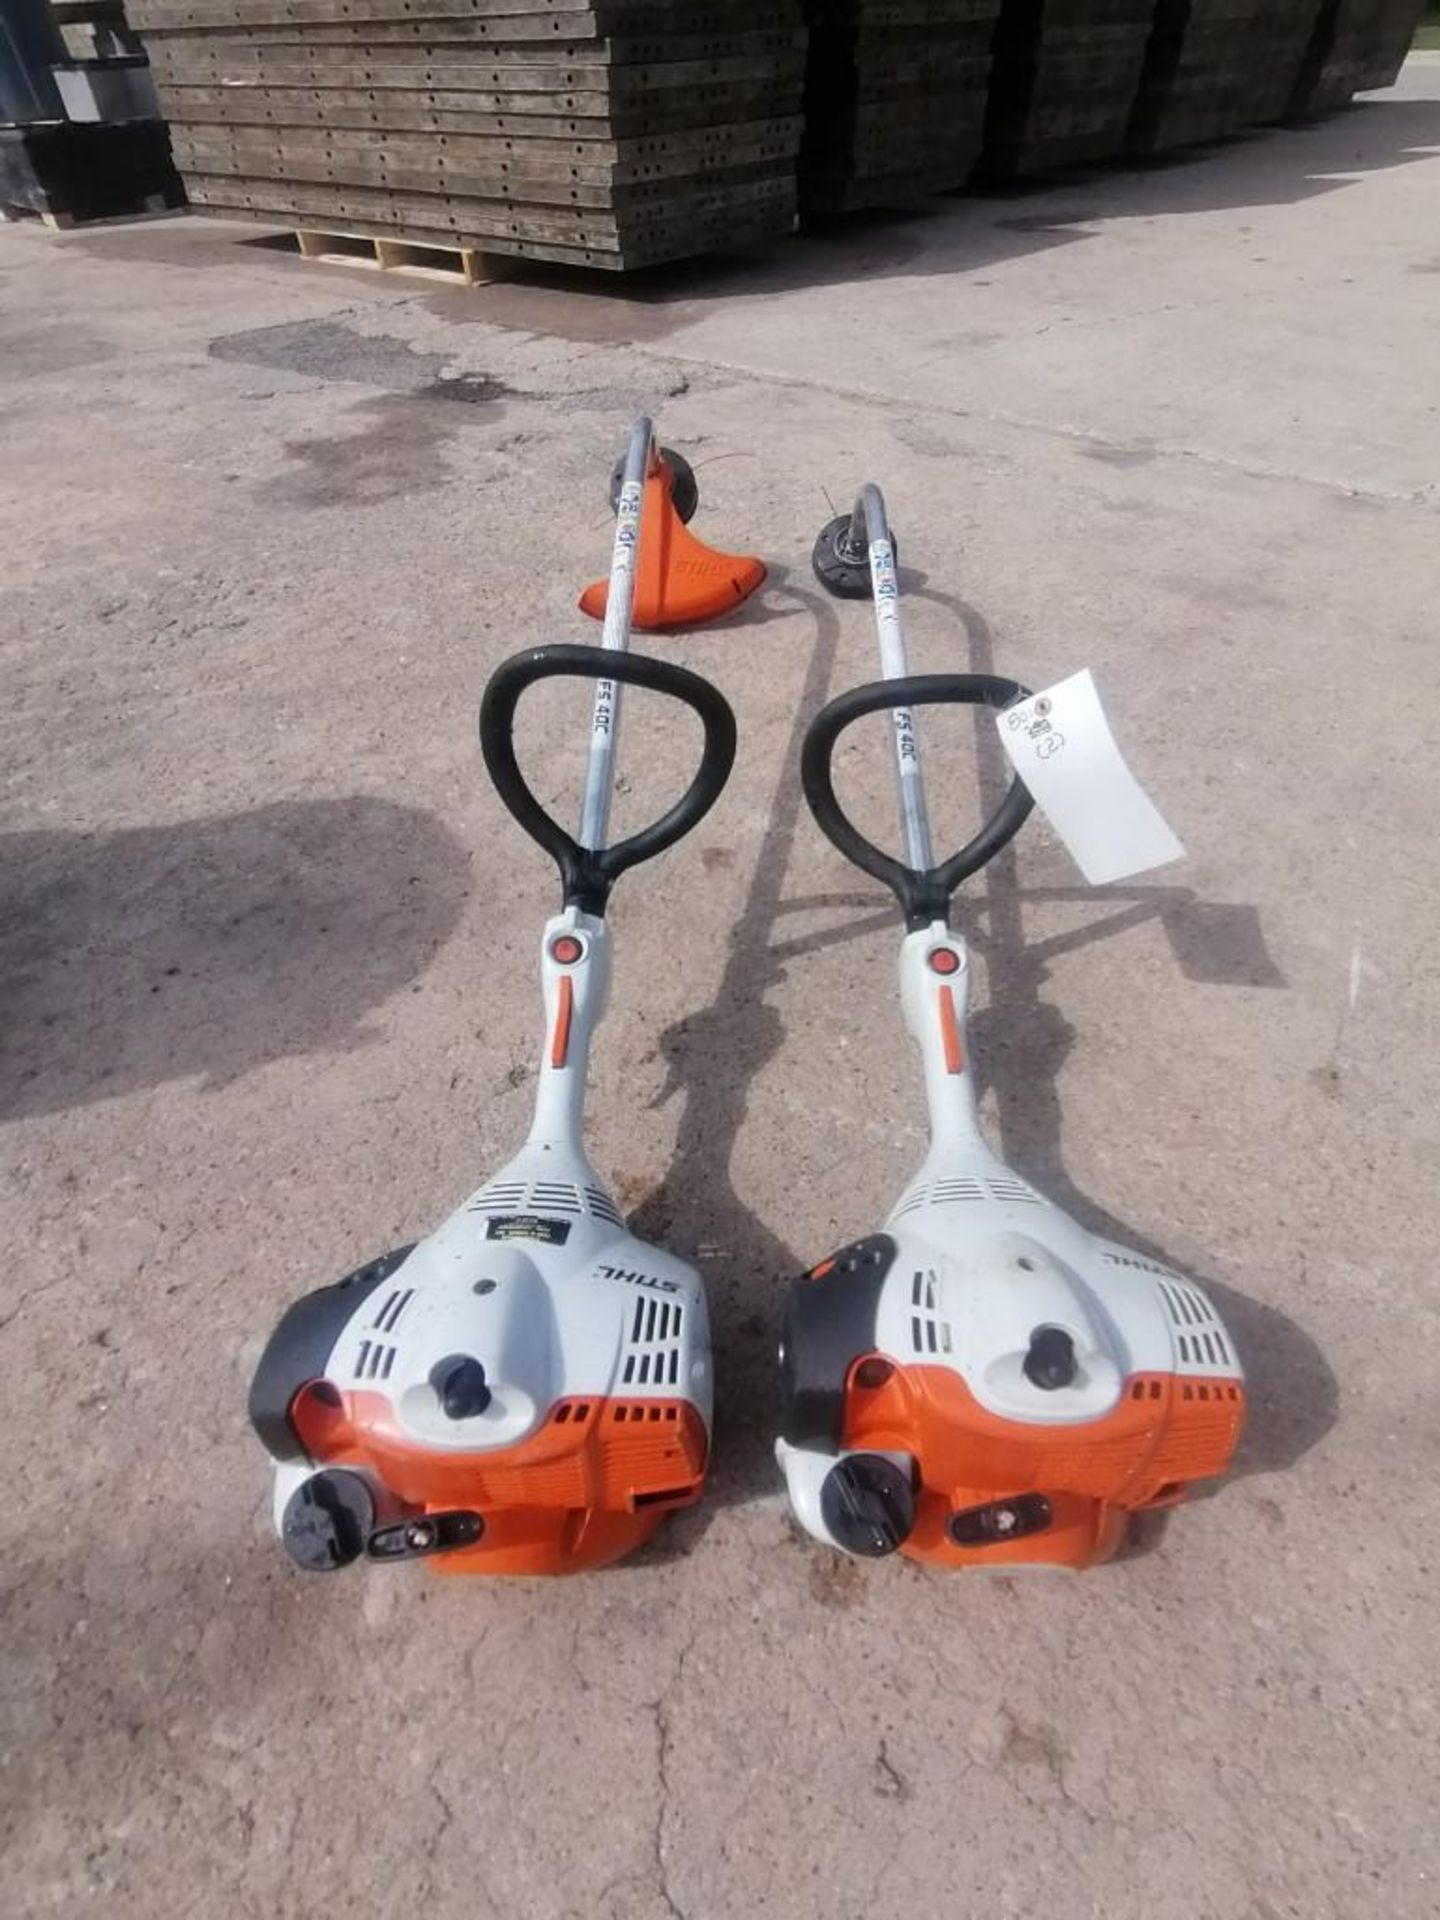 (2) Stihl FS40C String Trimmer. Located at 301 E Henry Street, Mt. Pleasant, IA 52641.